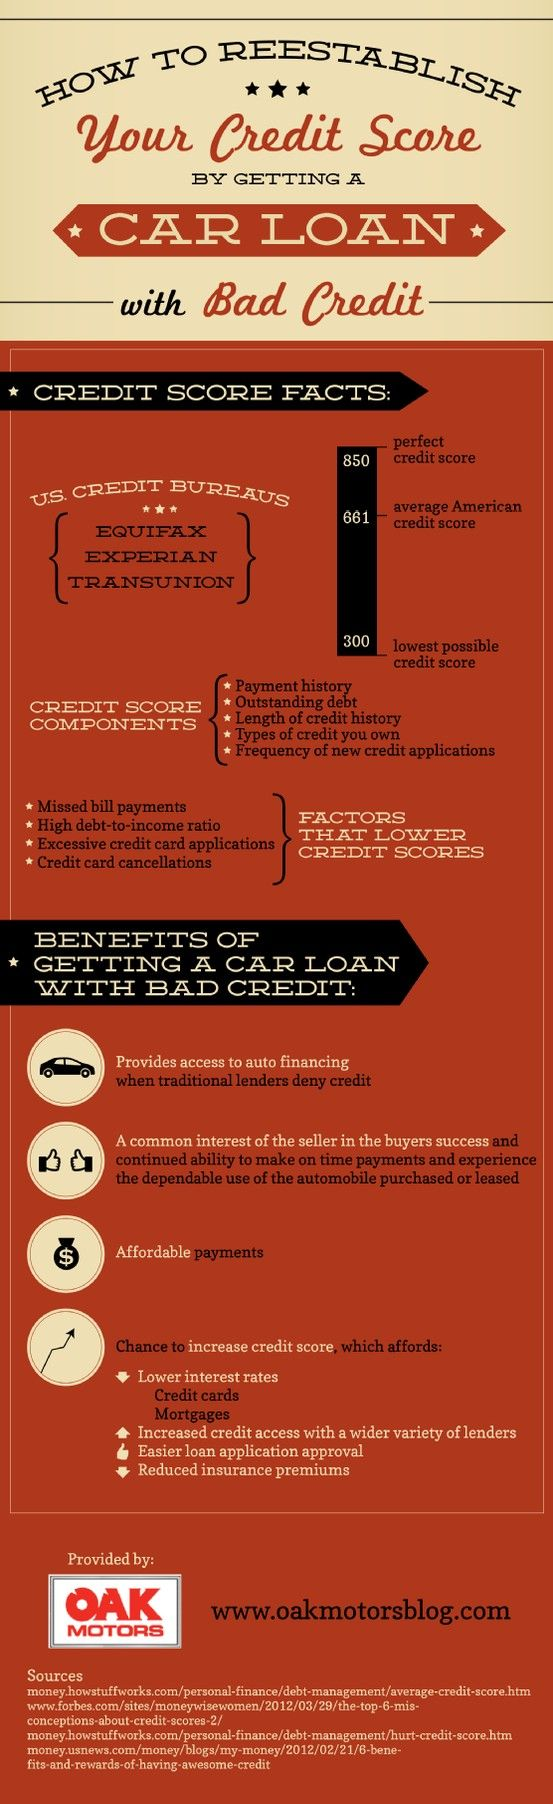 Did you know that the average credit score in the United States is 661? This infographic from our used car dealership shows you how to figure out your own score and find a way to improve it. Infographic source: http://www.oakmotorsblog.com/674804/2013/04/03/how-to-reestablish-your-credit-score-with-a-bad-credit-car-loan-infographic.html